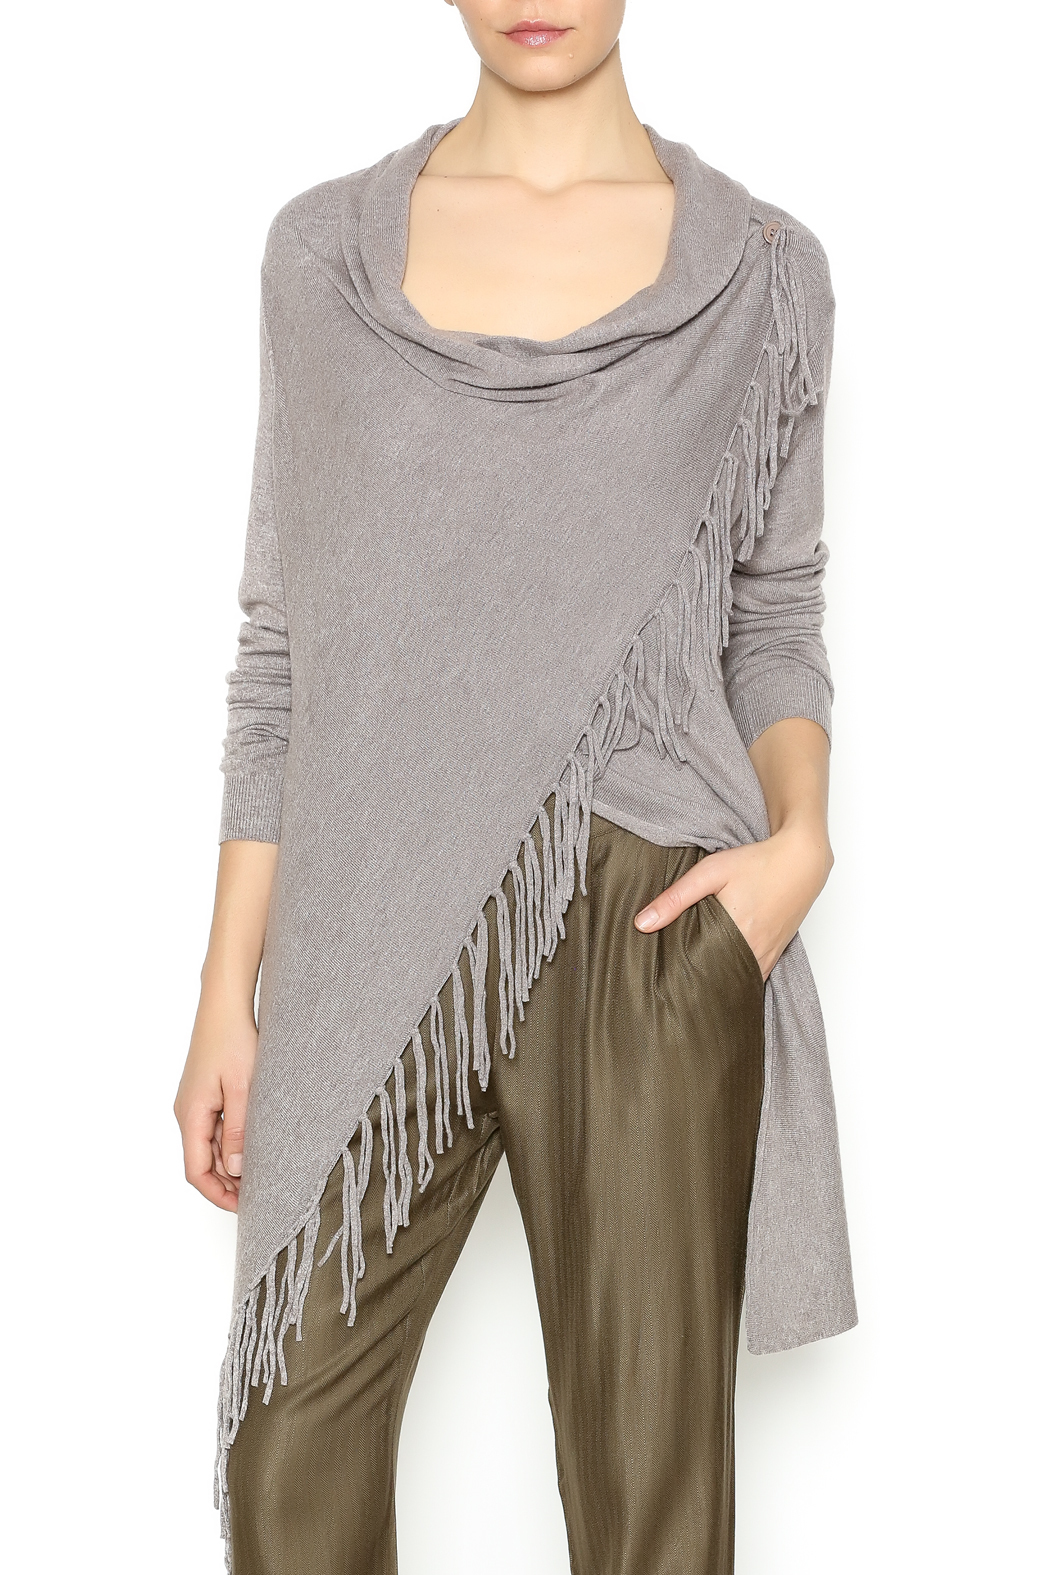 WILLIAM B Asymmetrical Fringe Sweater - Front Cropped Image